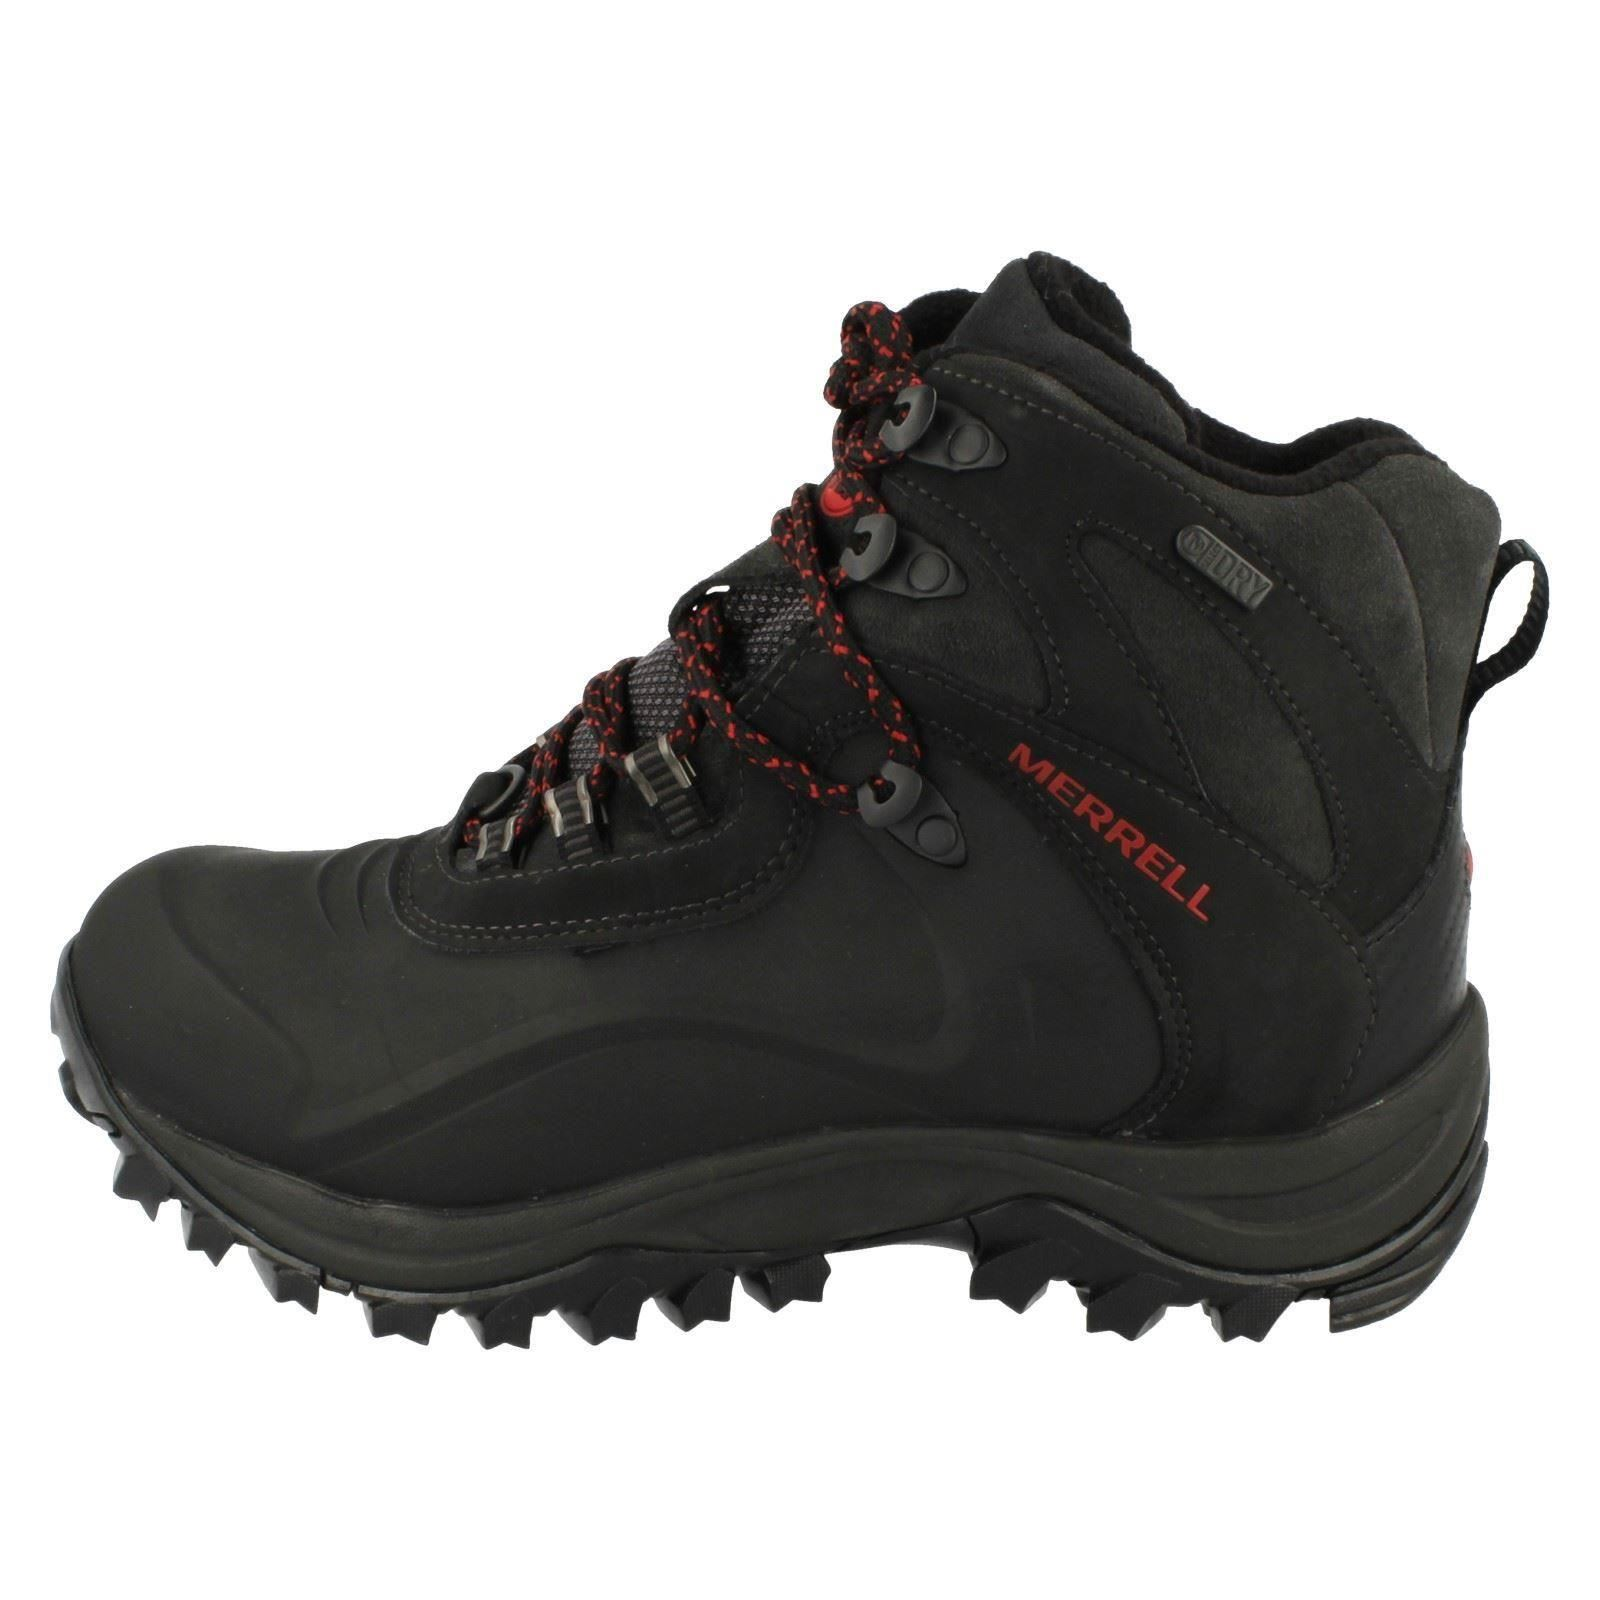 Mens Merrell Waterproof Lace Up Boots Iceclaw Mid J41907